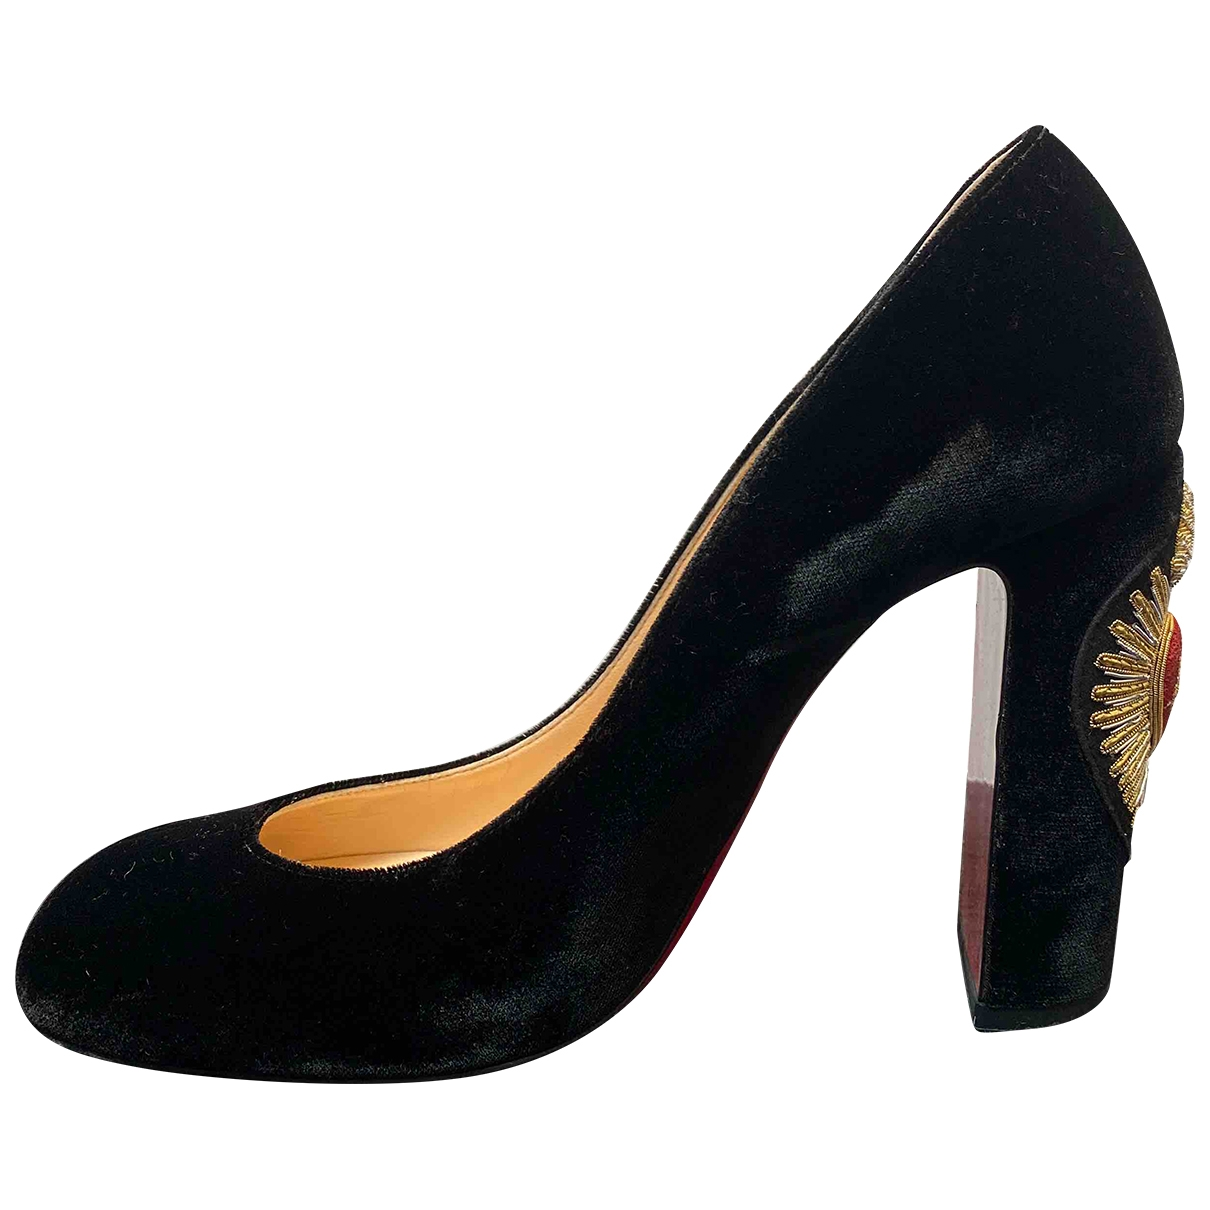 Christian Louboutin \N Pumps in  Schwarz Samt